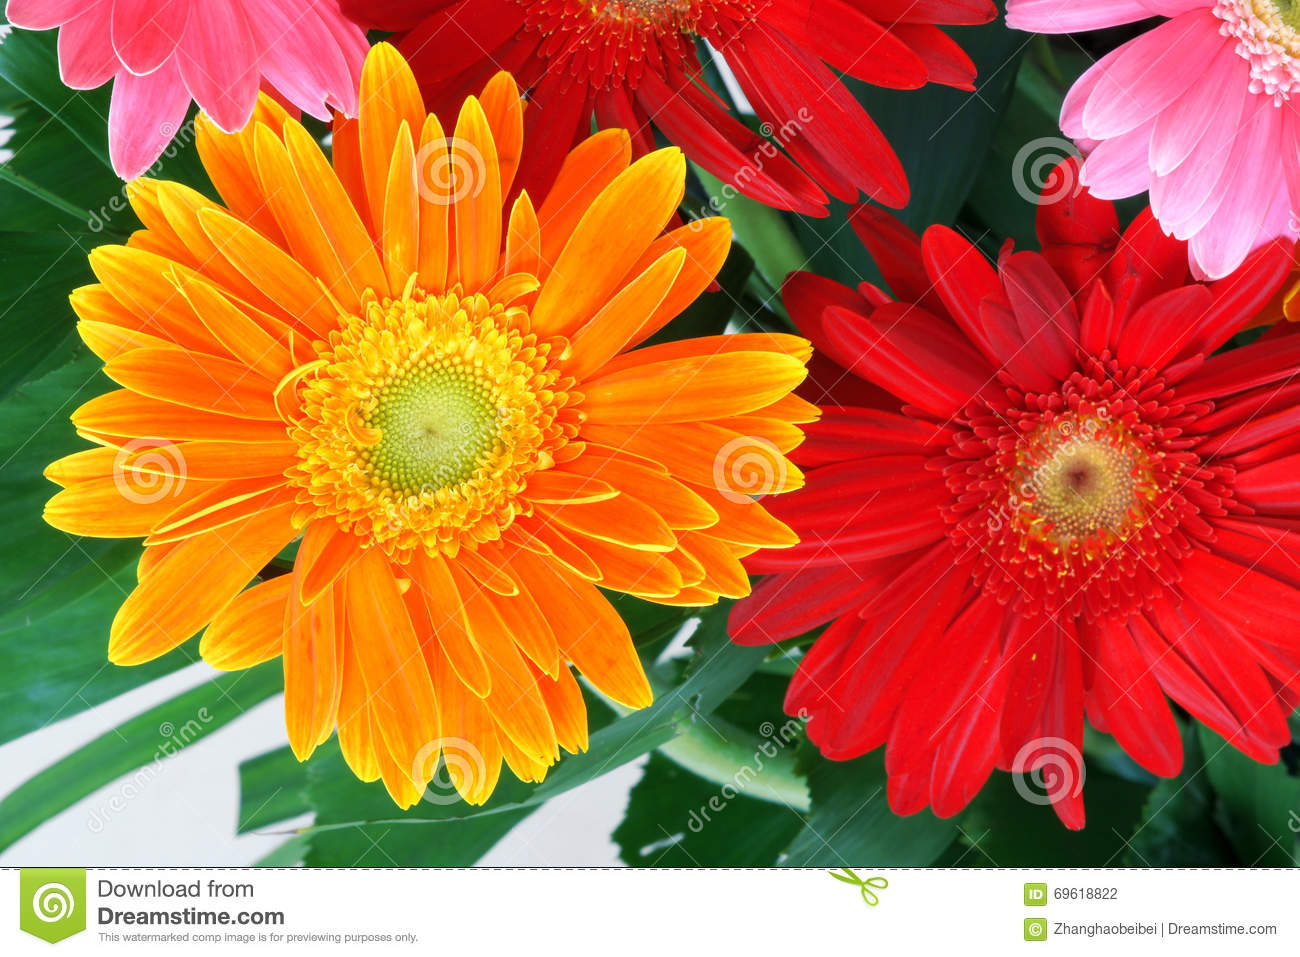 African daisy stock photo image of blossom jamesonii 69618822 the close up of flower of african daisyscientific namegerbera jamesonii izmirmasajfo